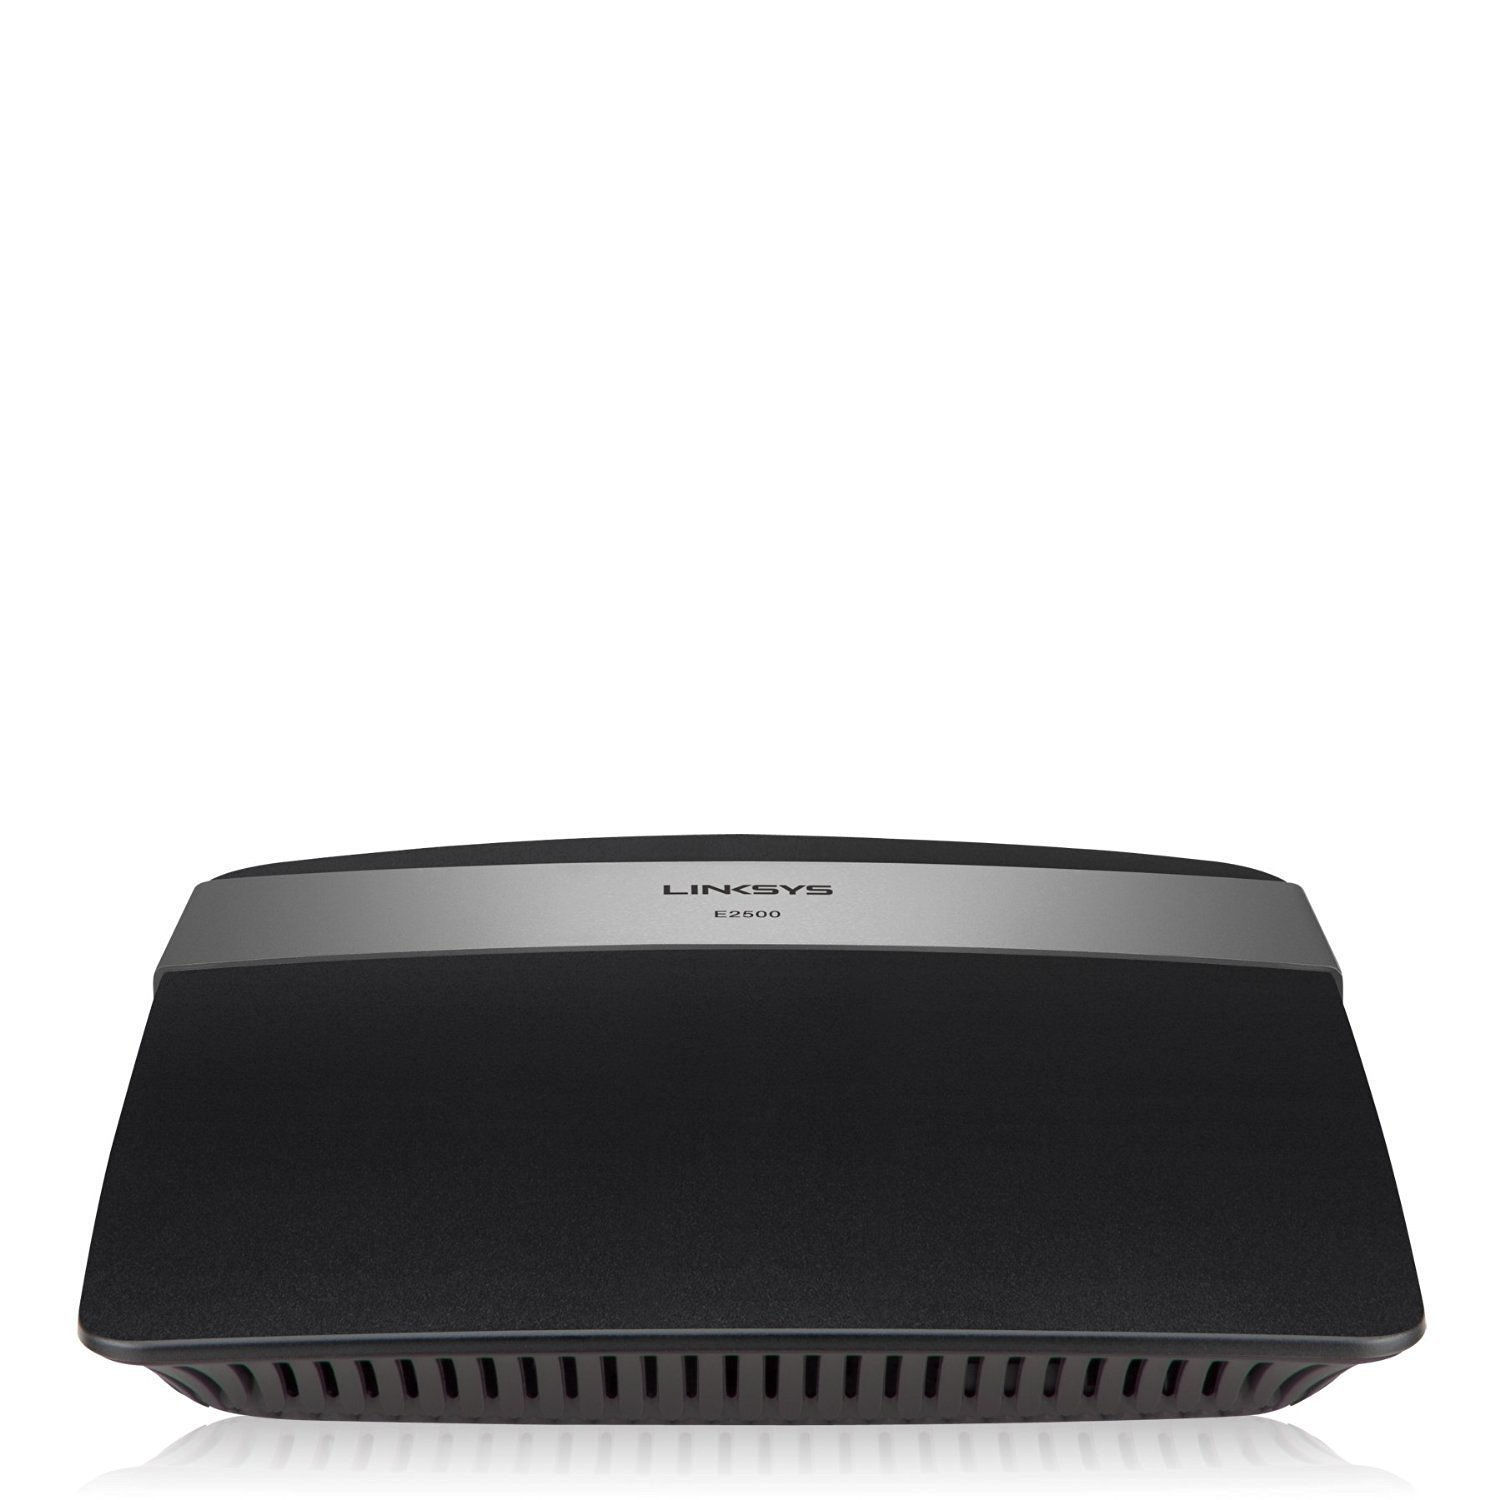 Linksys N600 Dual Band Wireless Router (E2500-CA) Wireless Networking